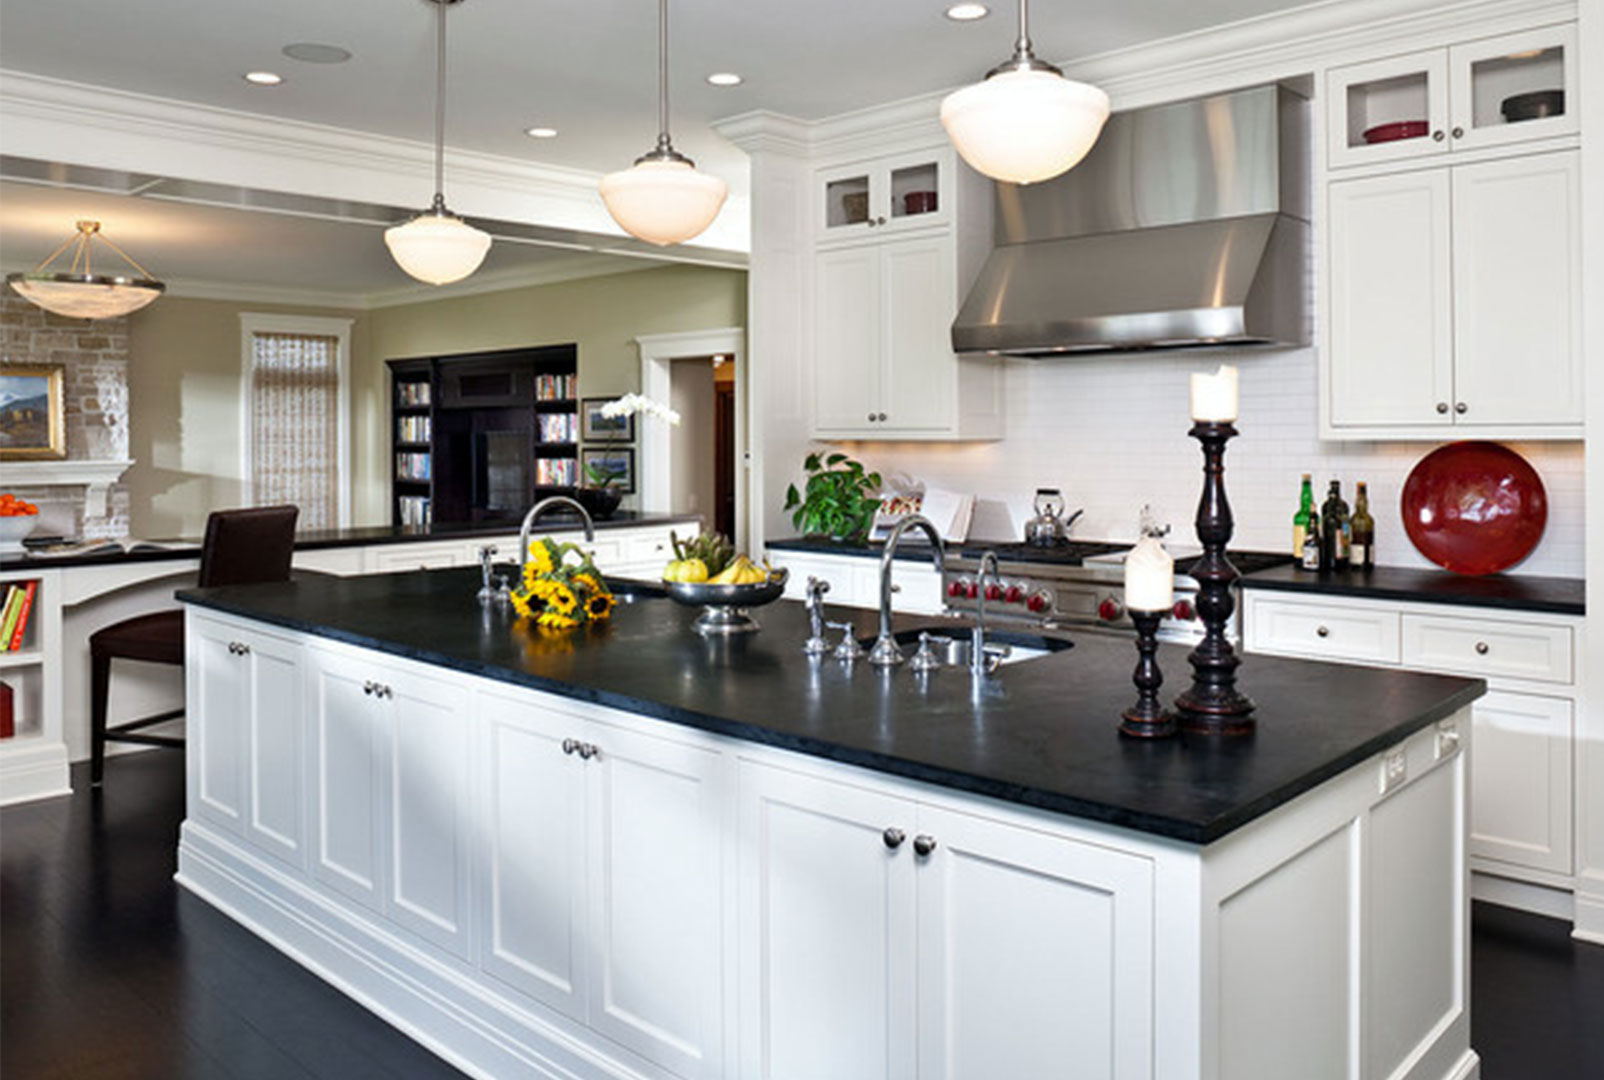 designing kitchens eat in kitchen island first thoughts on remodeling desis home experts